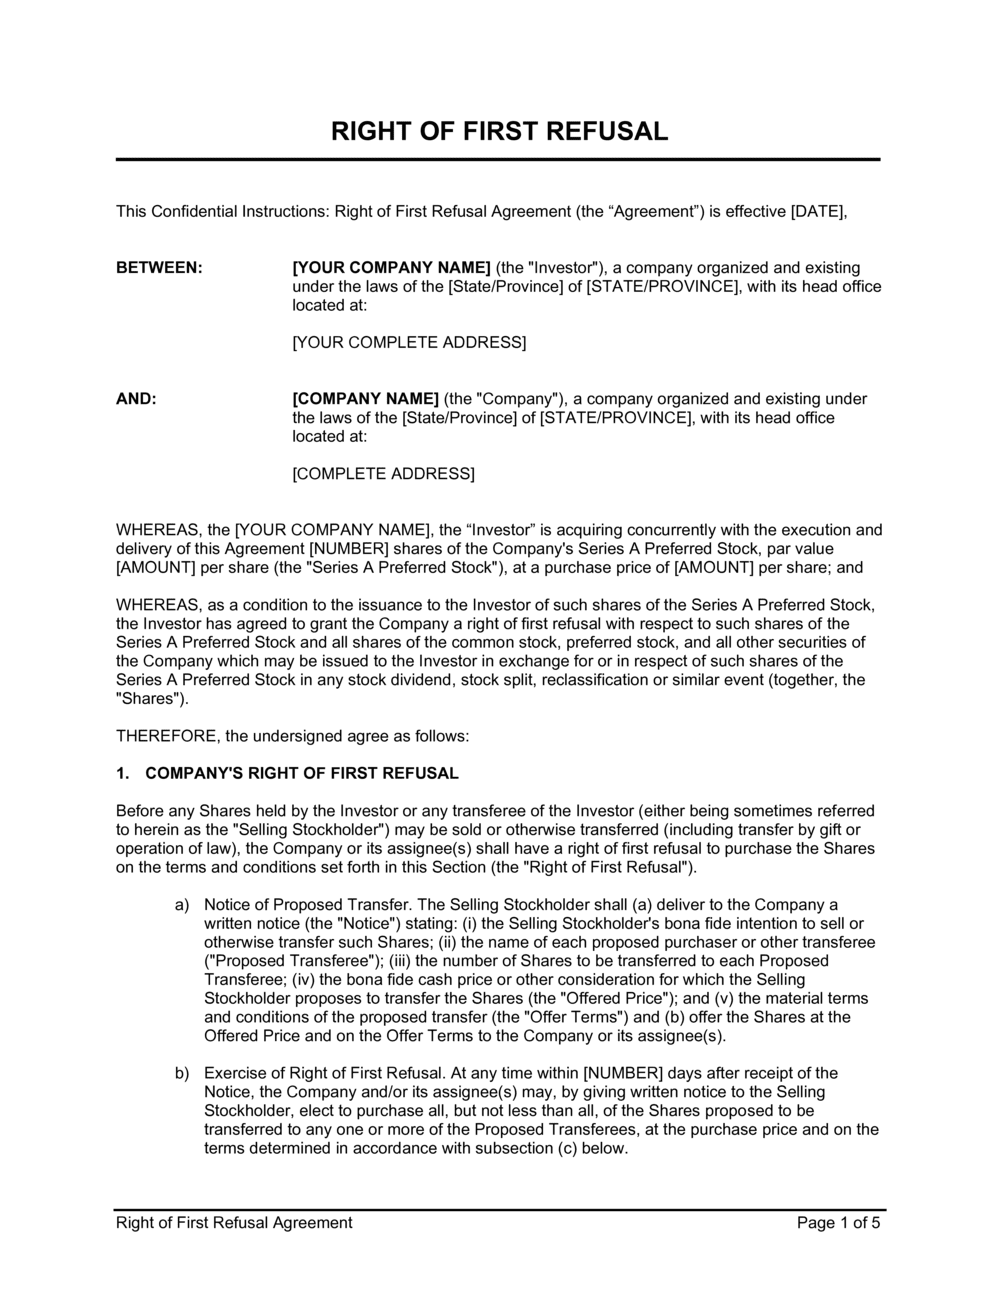 Business-in-a-Box's Right of First Refusal Agreement Template